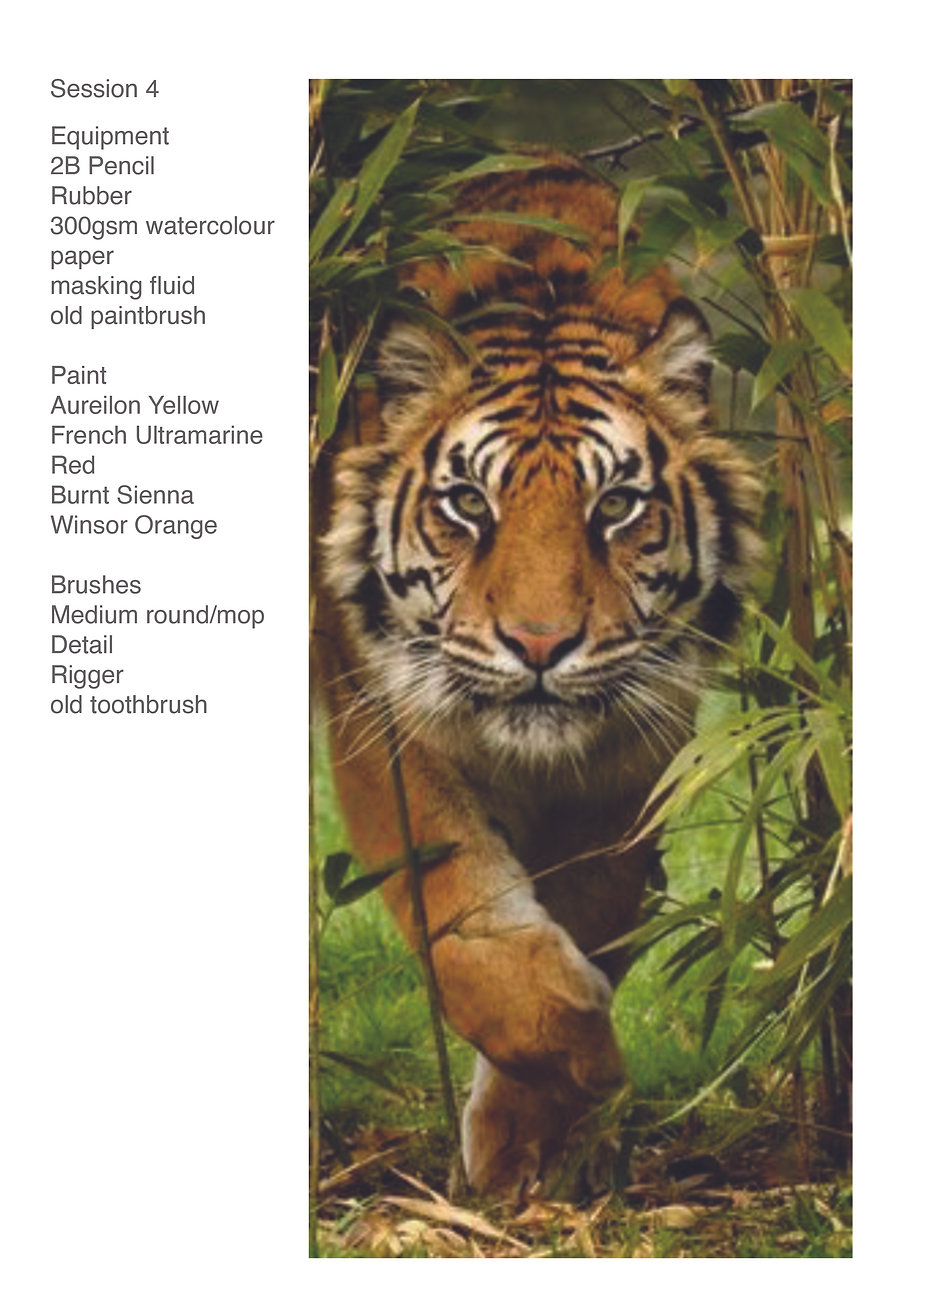 Tiger Image and equipment.jpg